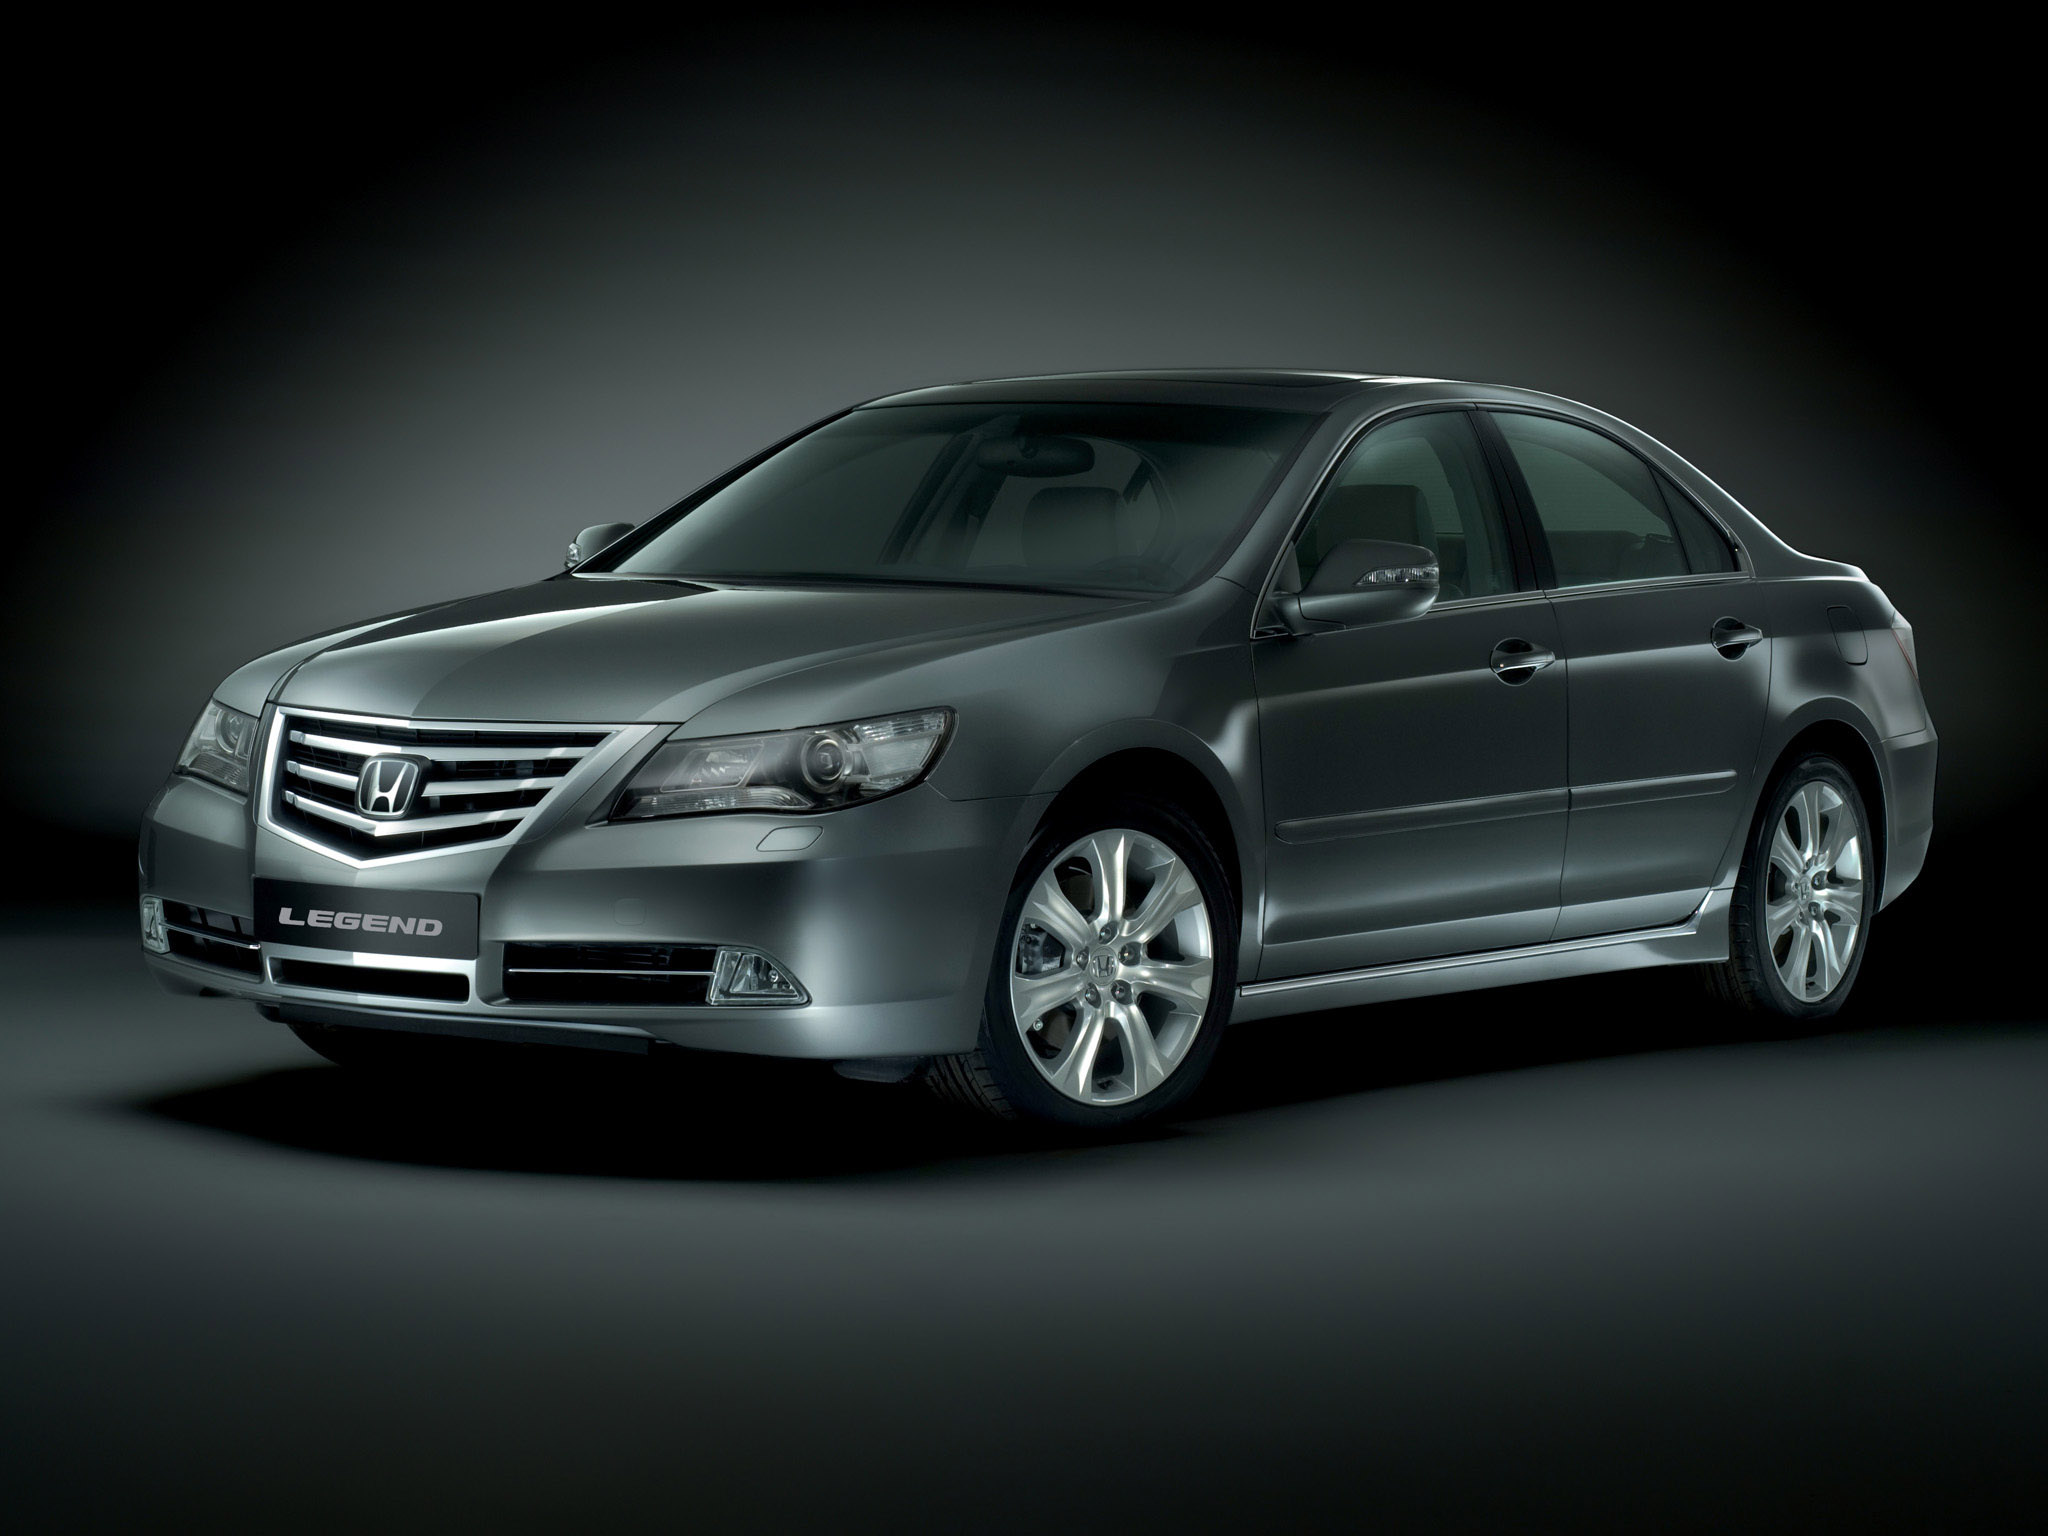 2008 Honda Legend Sedan 4-door